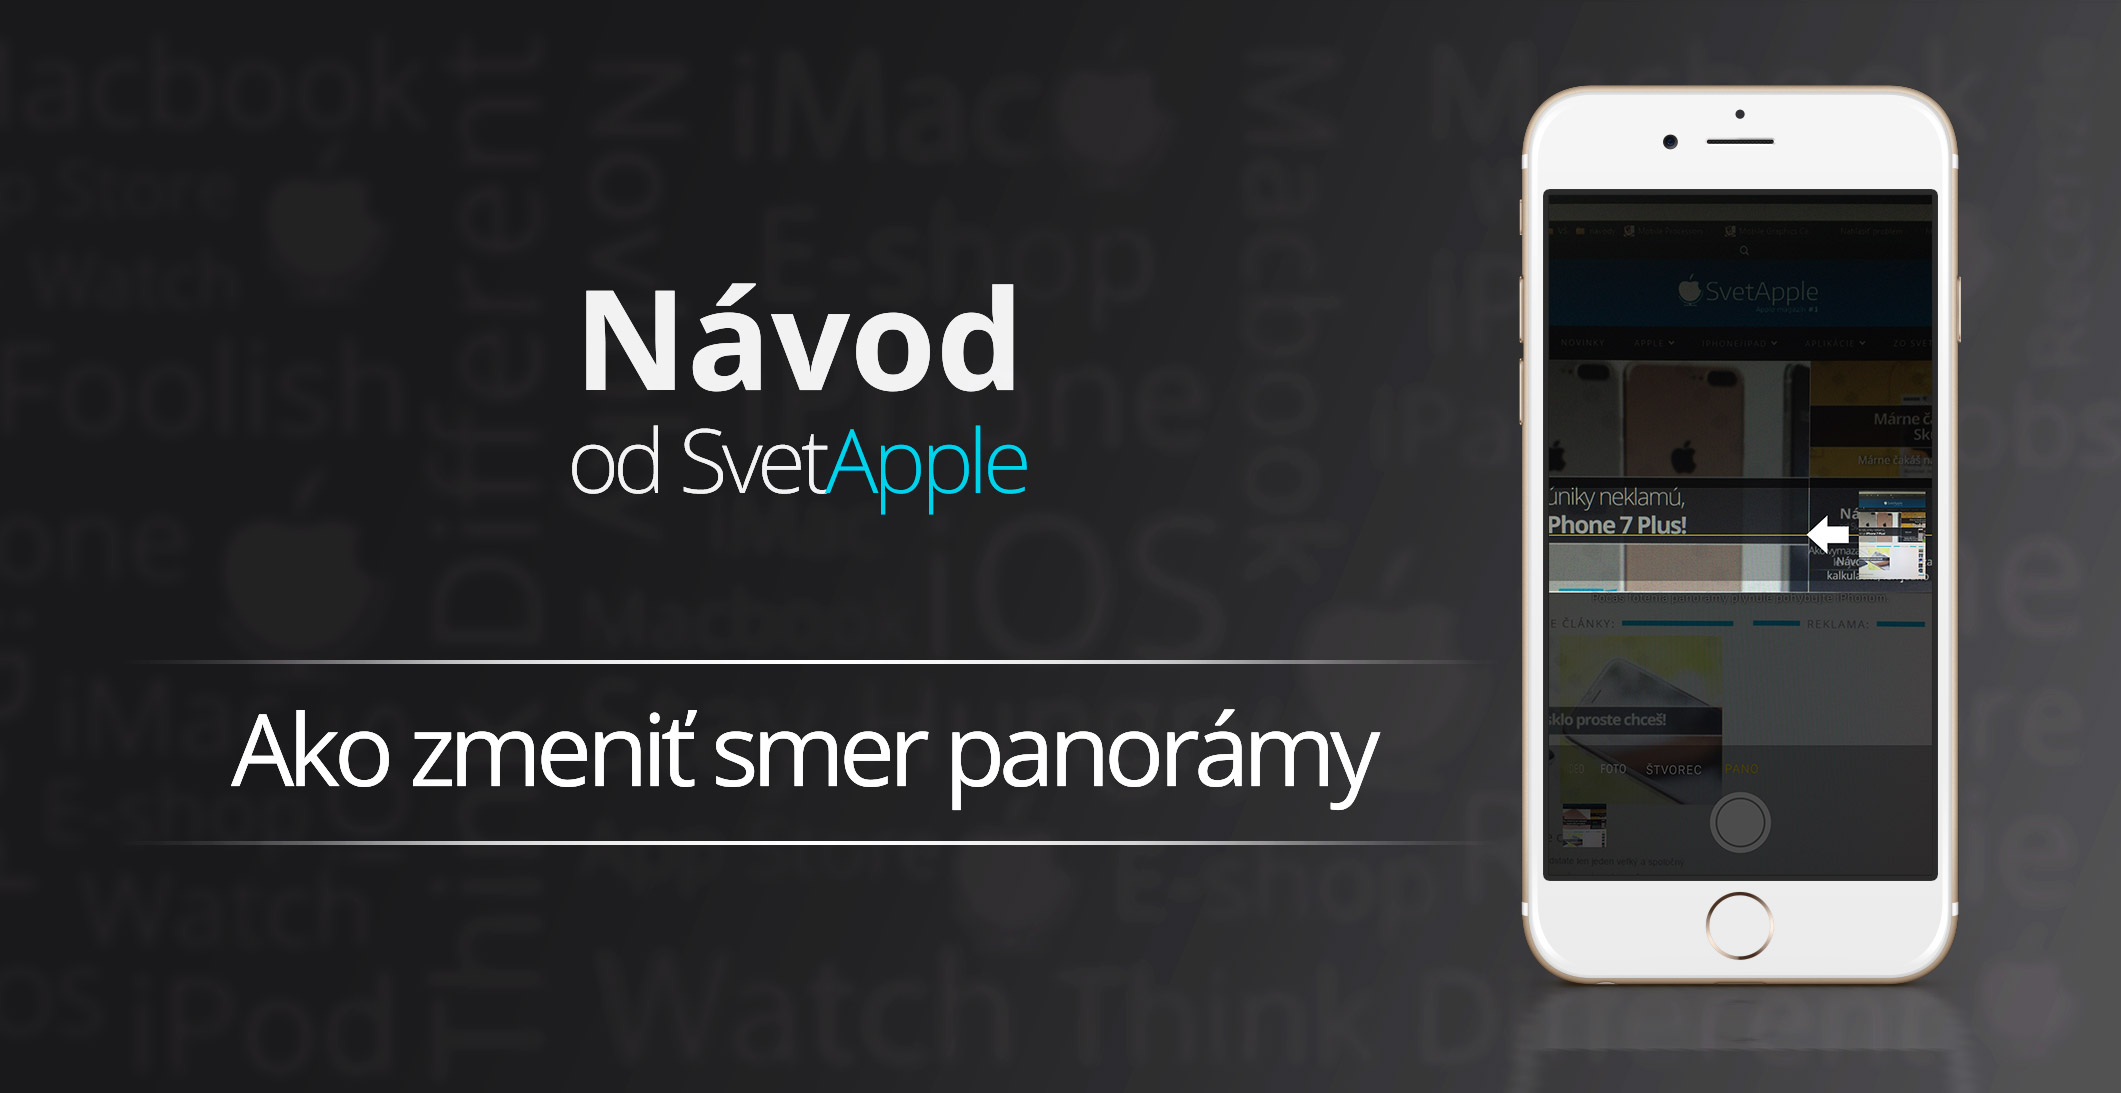 navod-iphone-smer-panoramy-svetapple